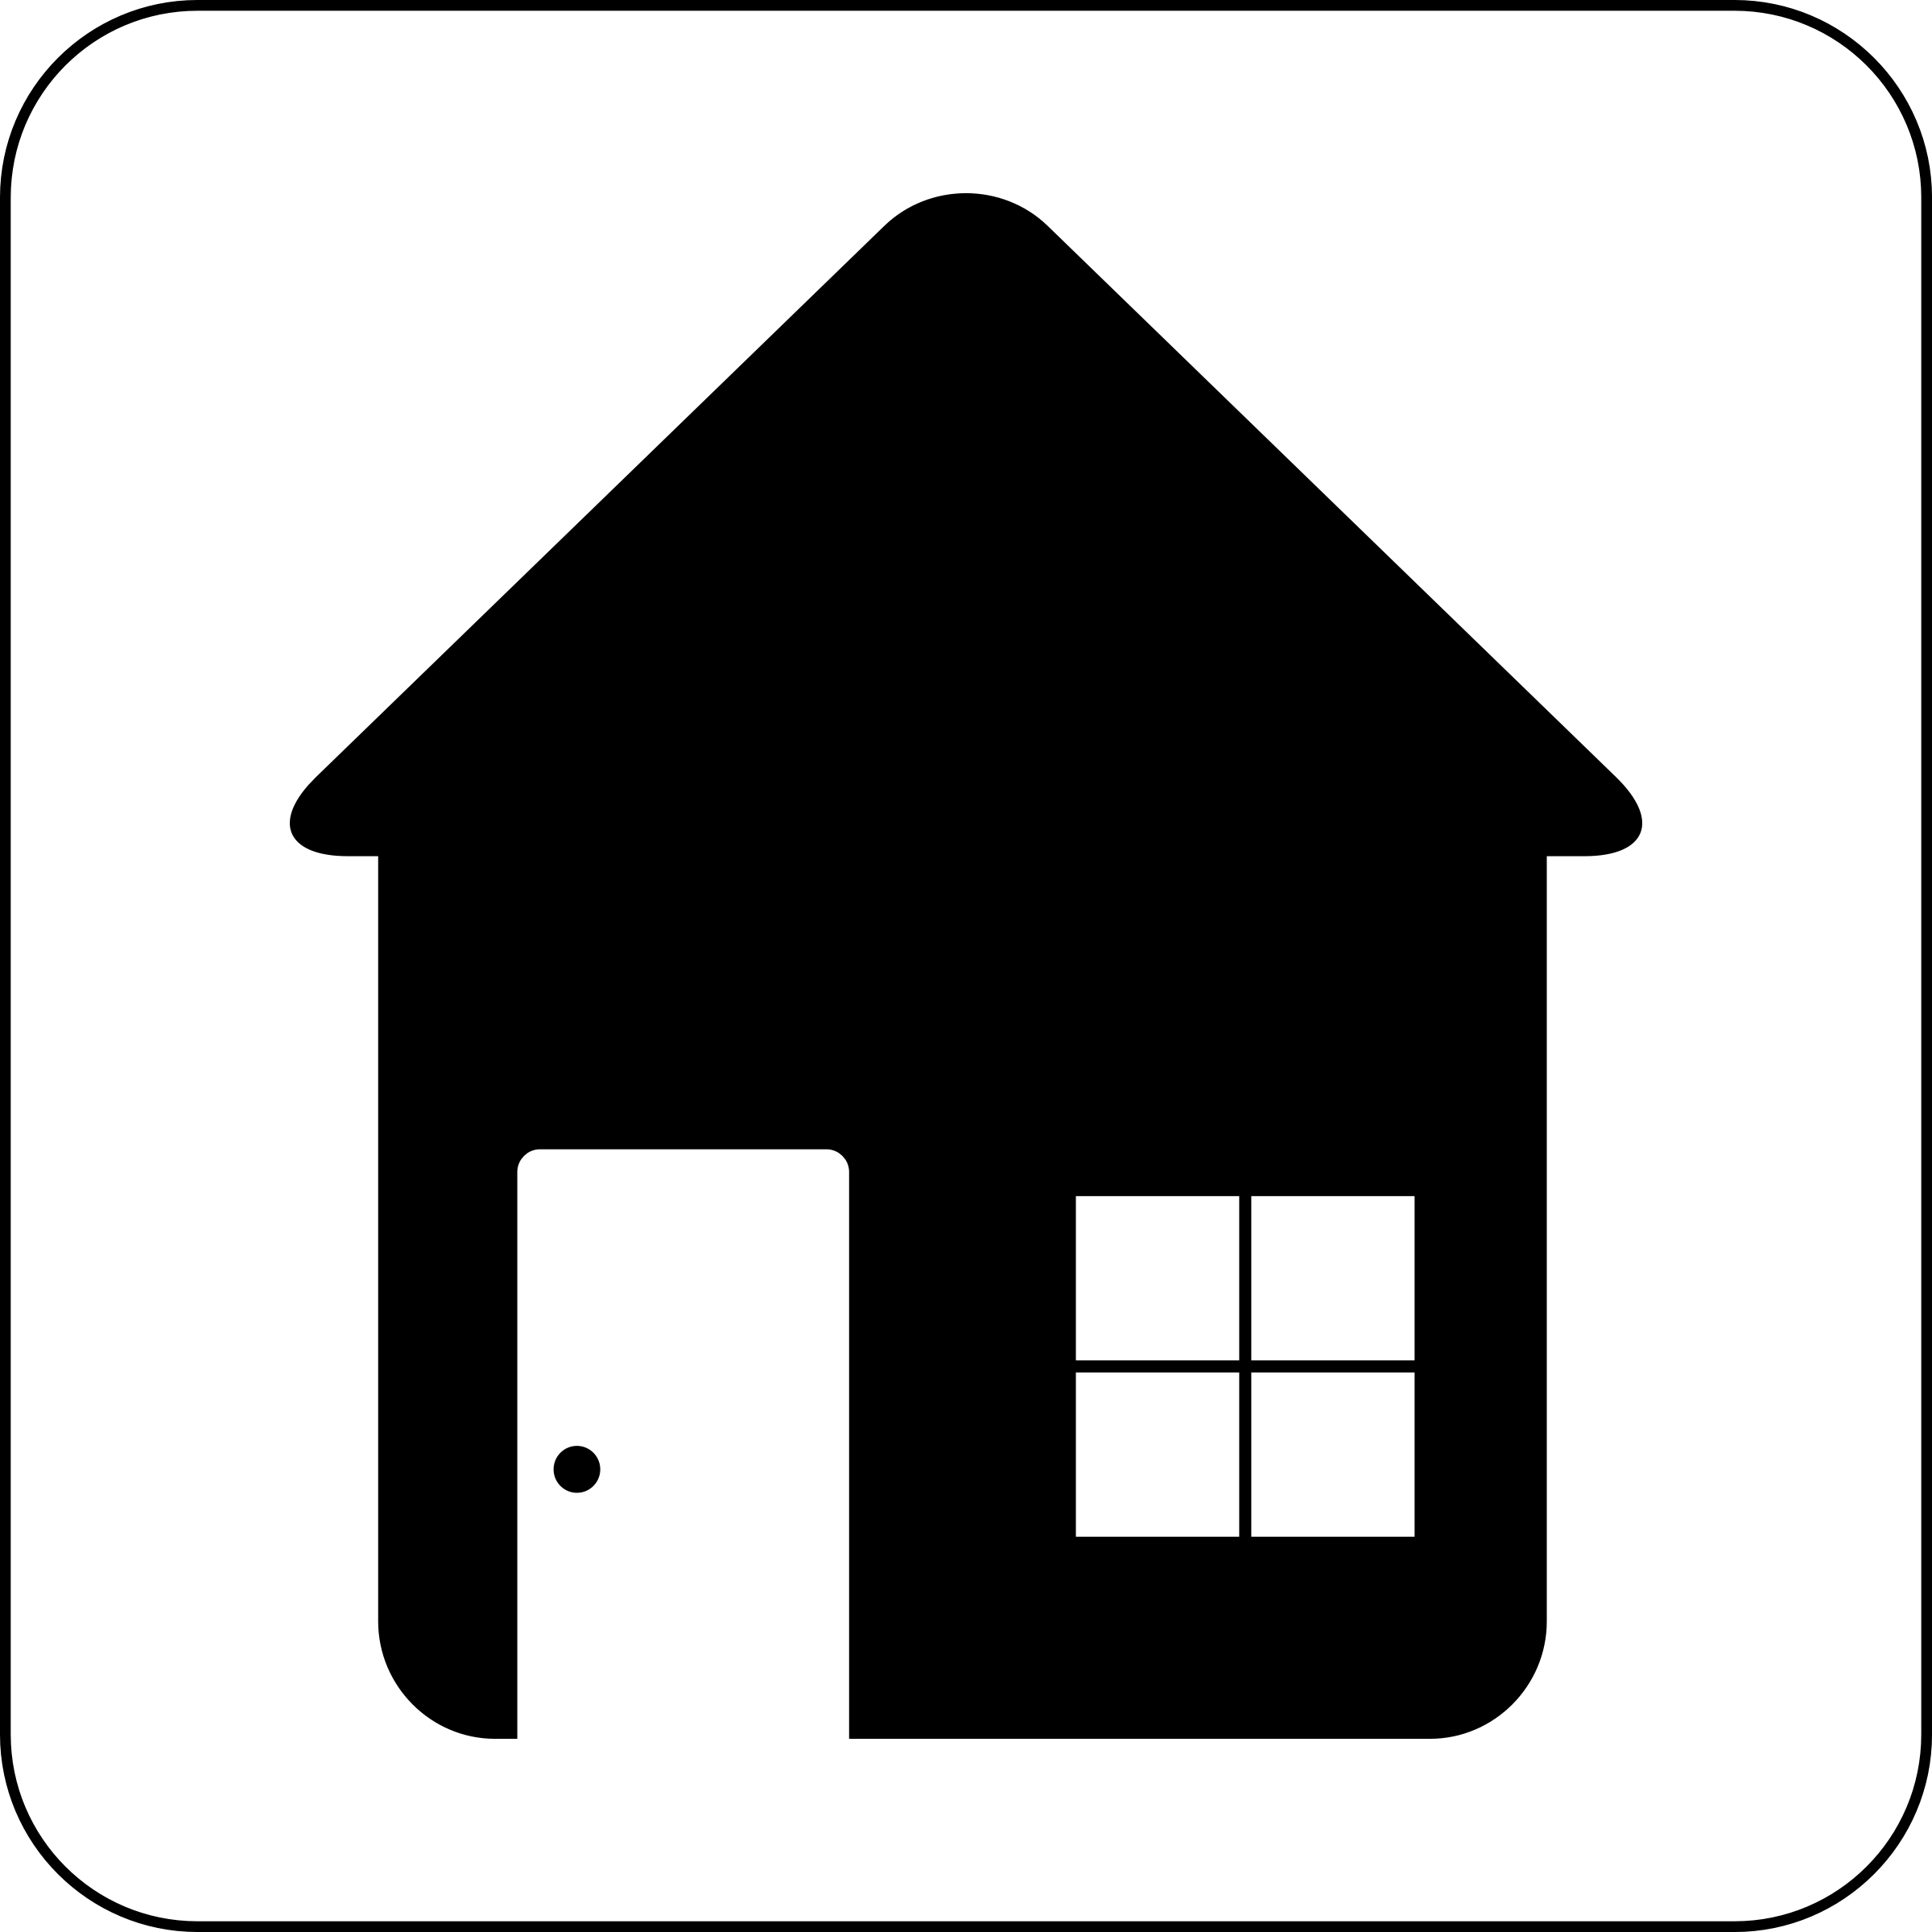 House Icon by cinemacookie